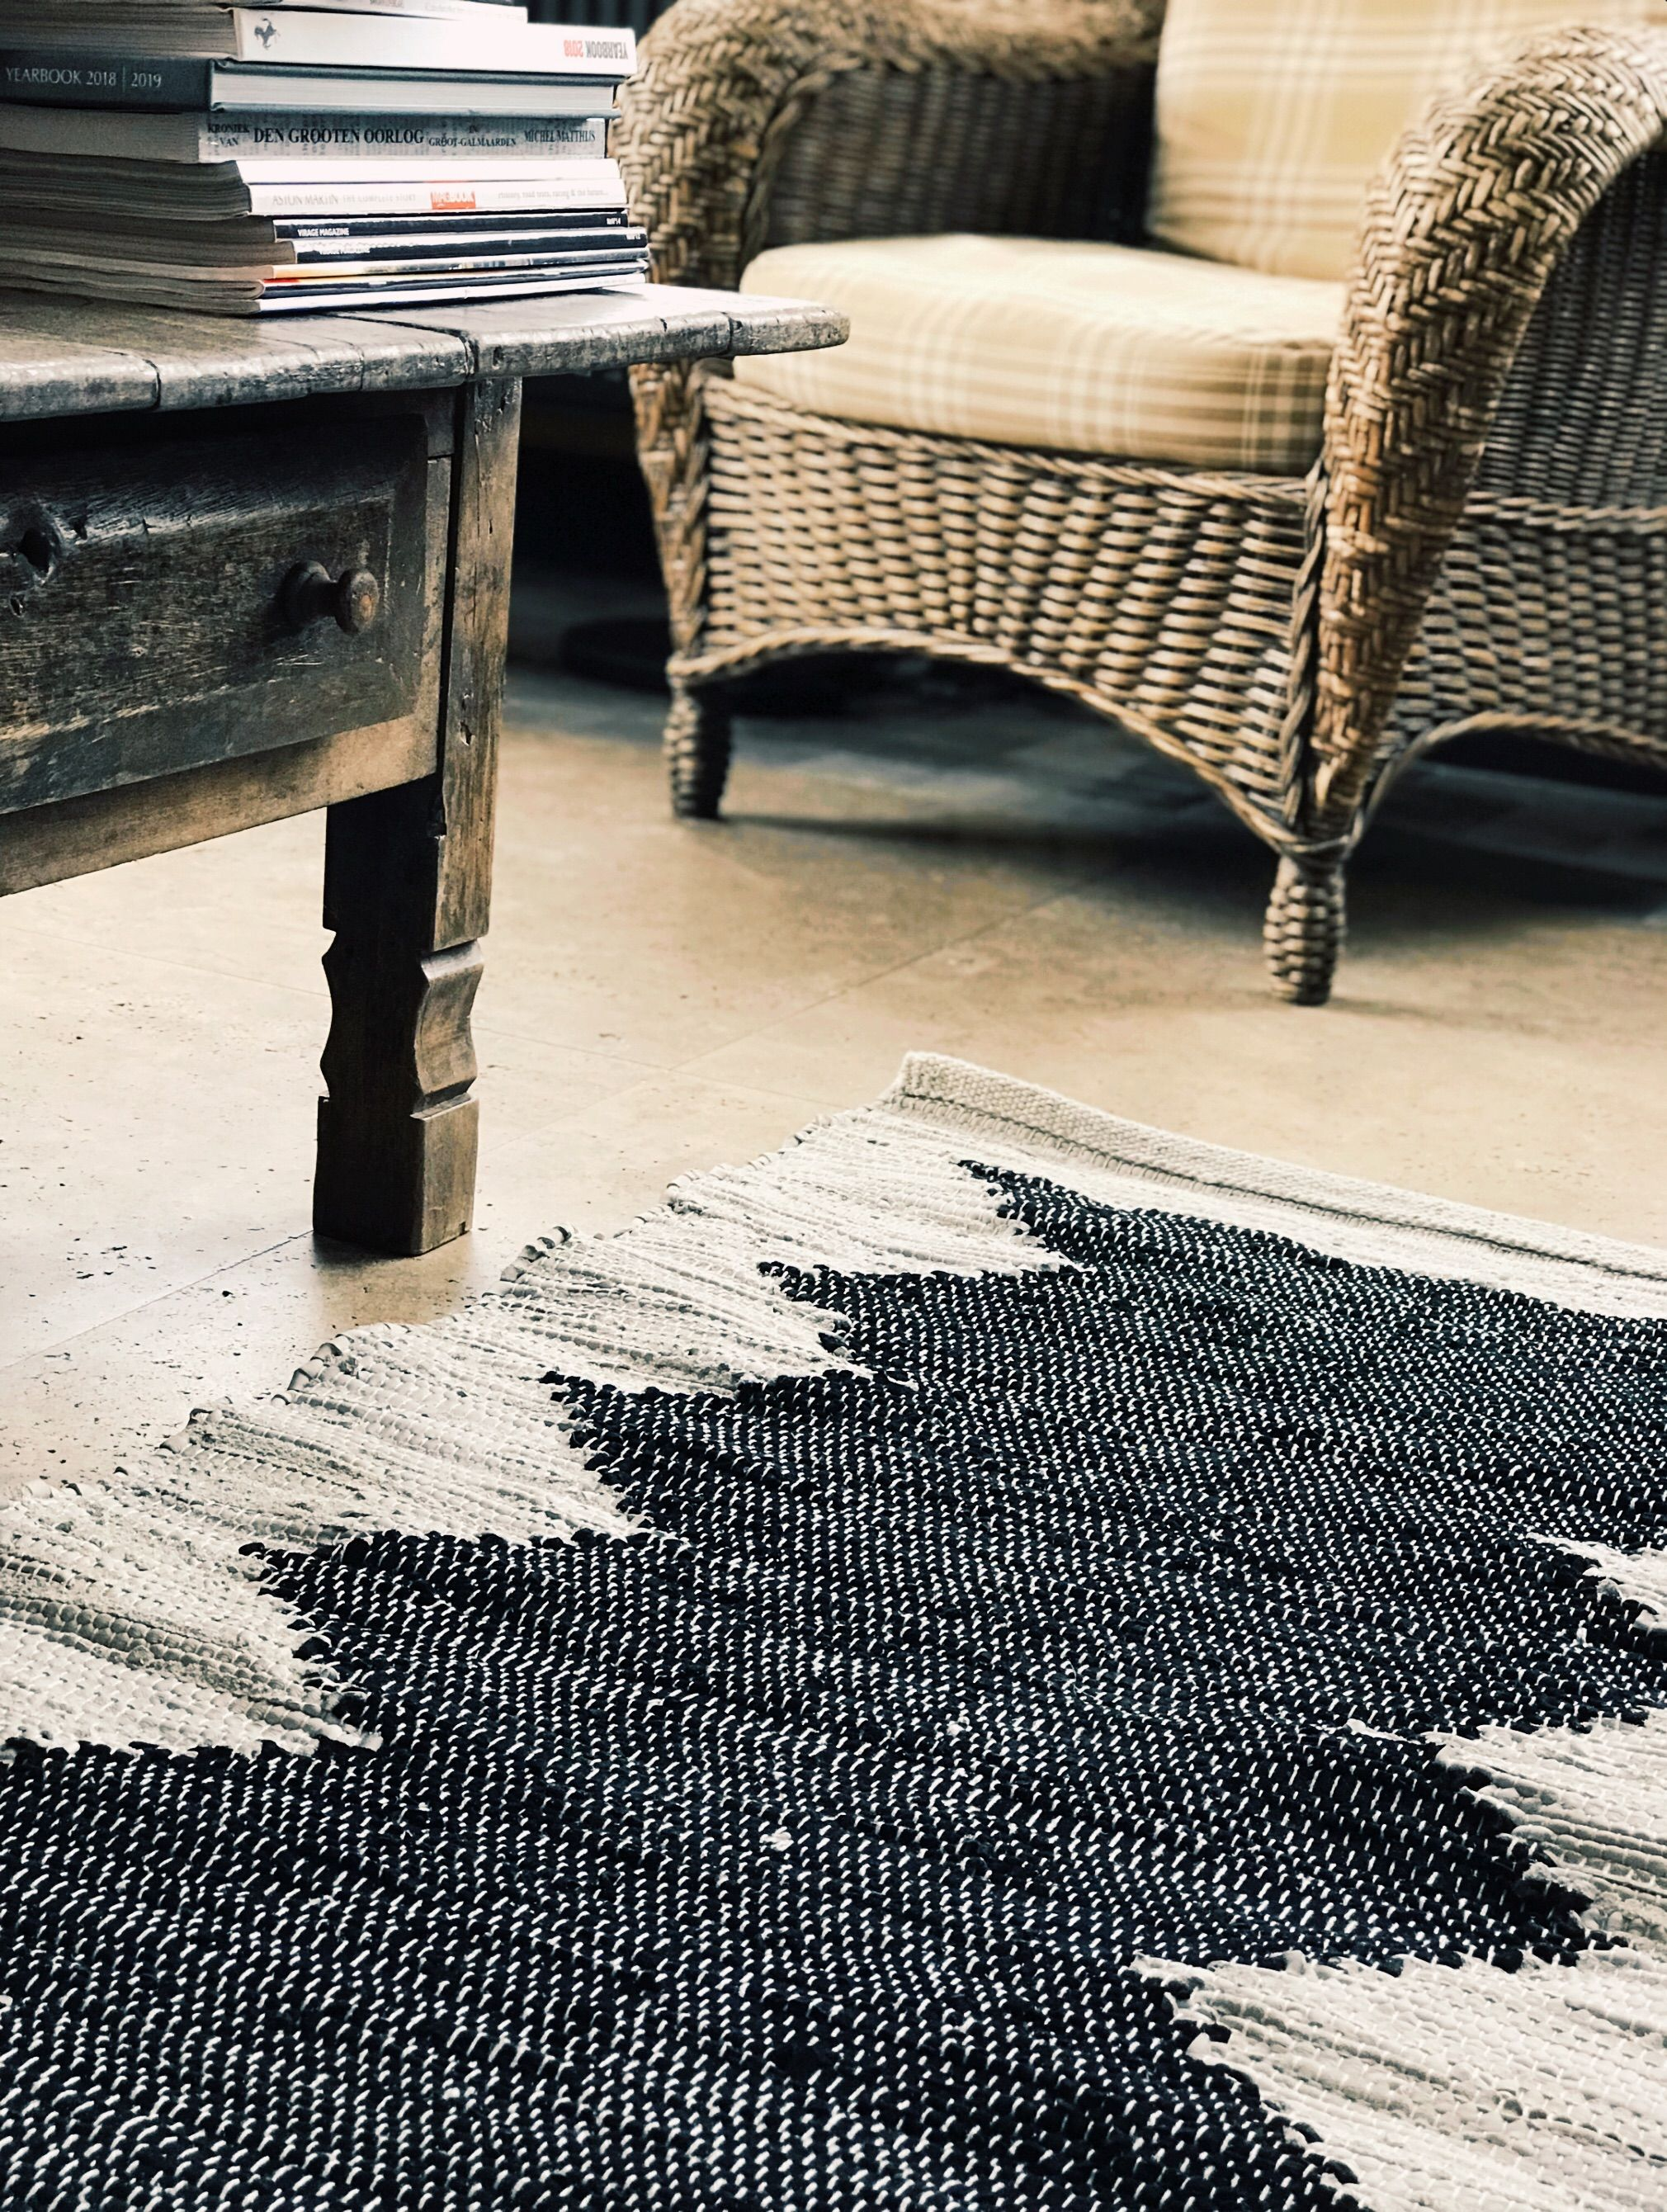 Bohemian Black And White Rug Made Out Of Recycled Rubber And Cotton This Carpet Is Quite Neutral But Will Still Add That Extra To Your Home Decor It Is Kelims